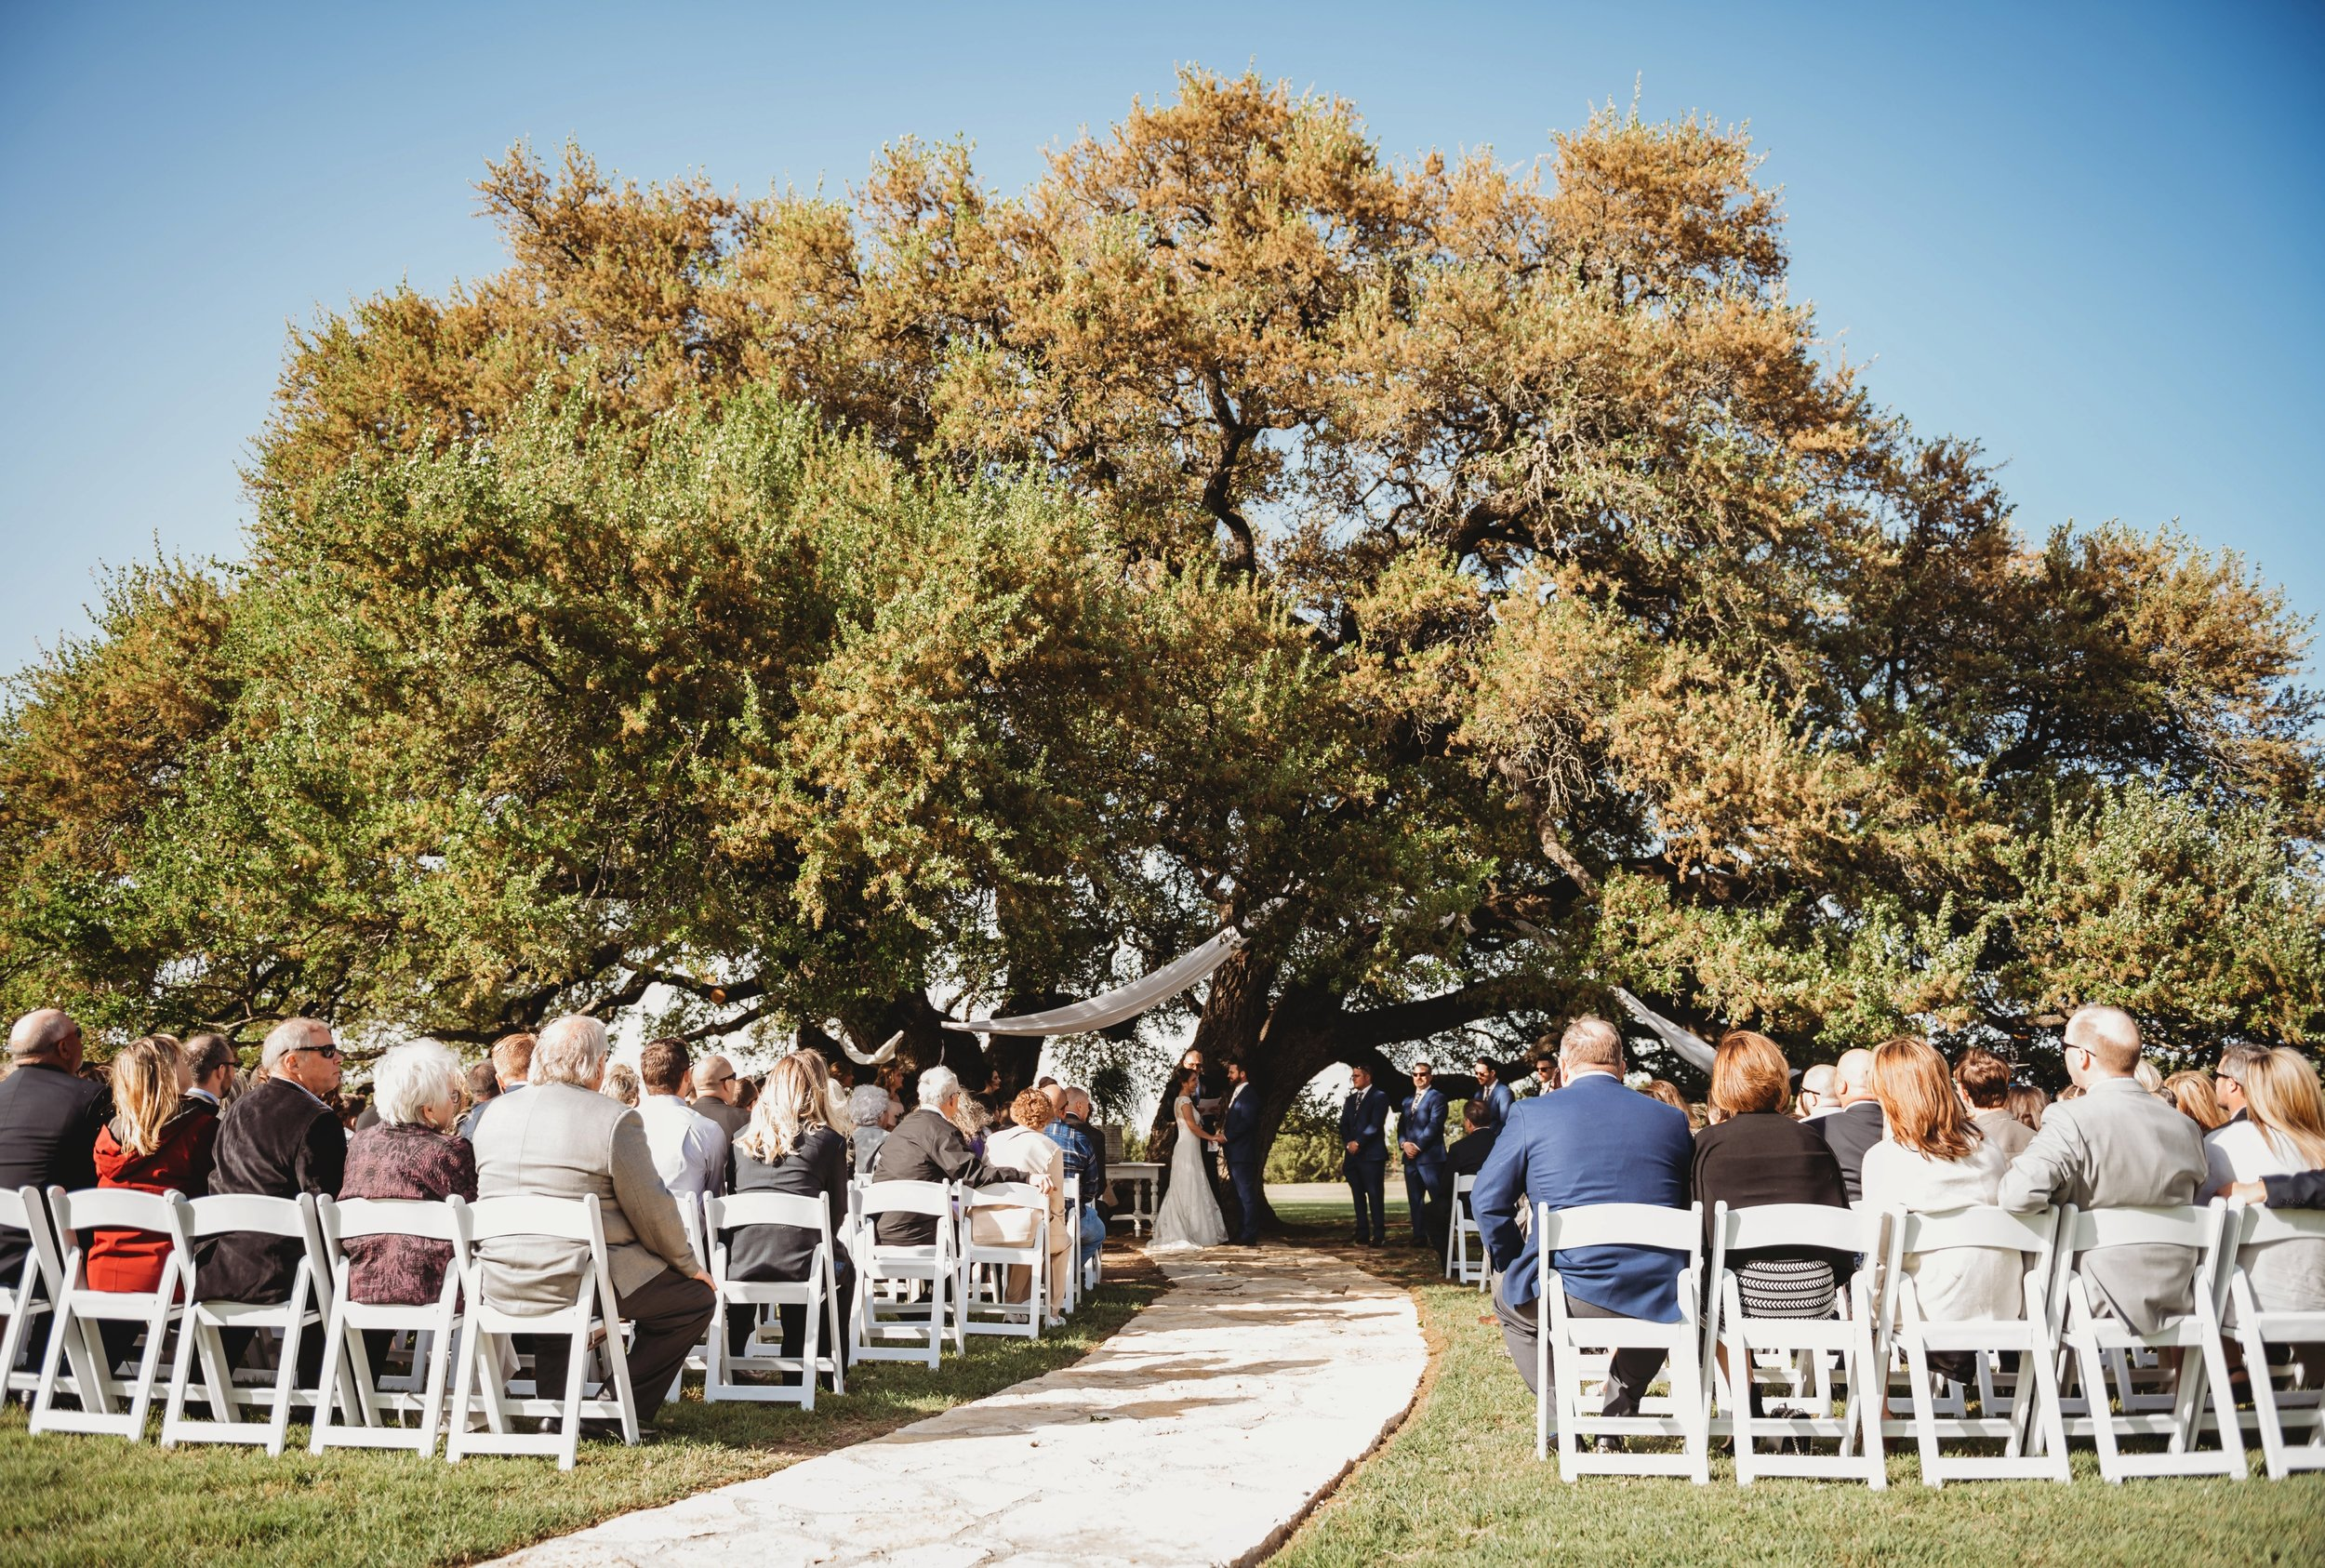 The-White-Fiore-Five-Oaks-Farm-Fort-Worth-Wedding-Planner-Ceremony_015.jpg